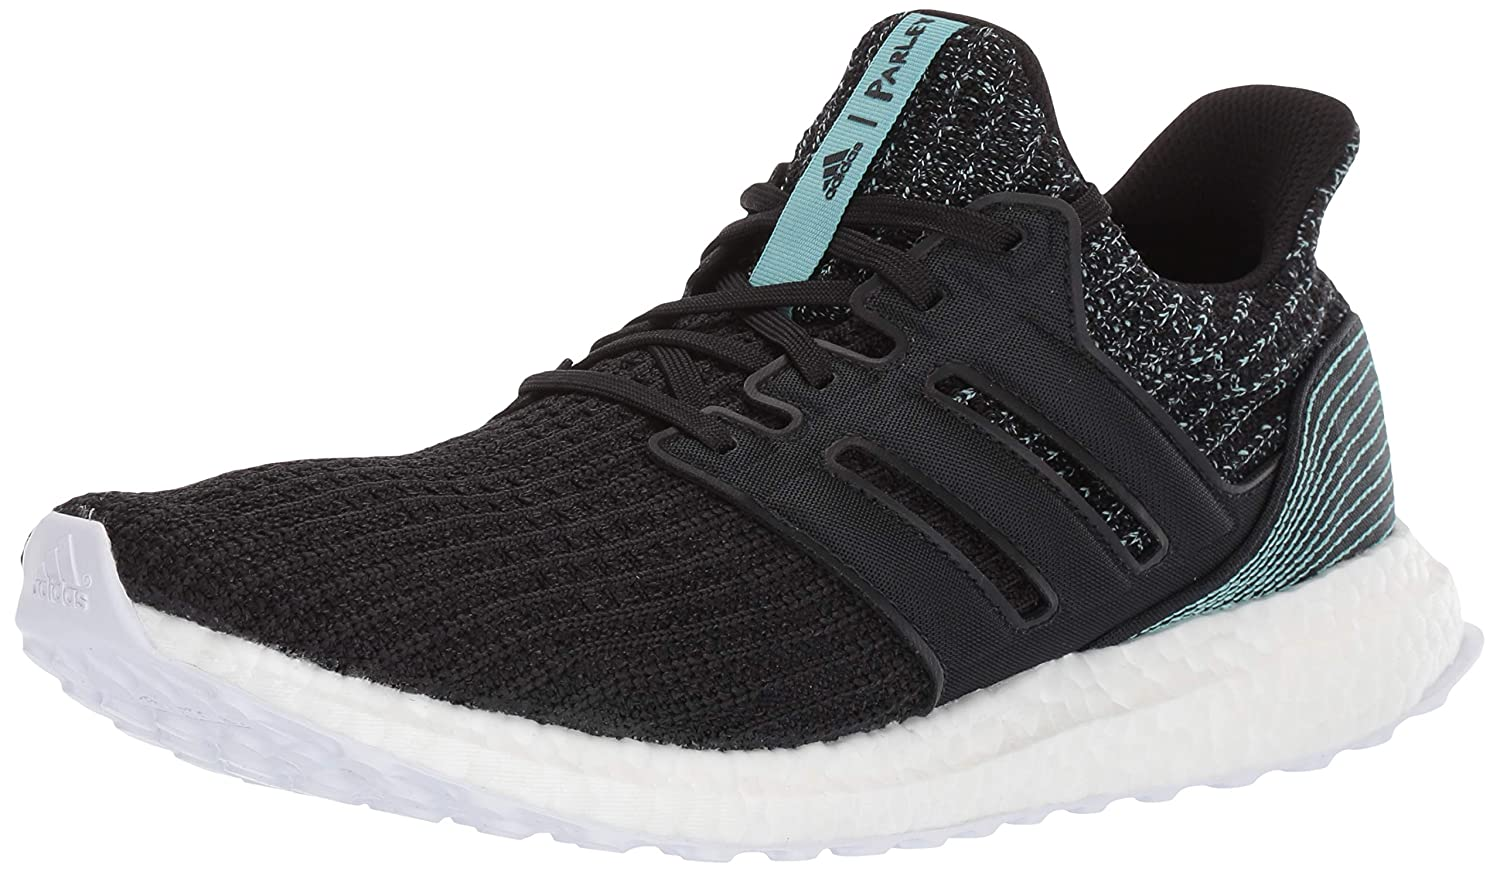 Core Black Core Black Footwear White Adidas Men's Ultraboost